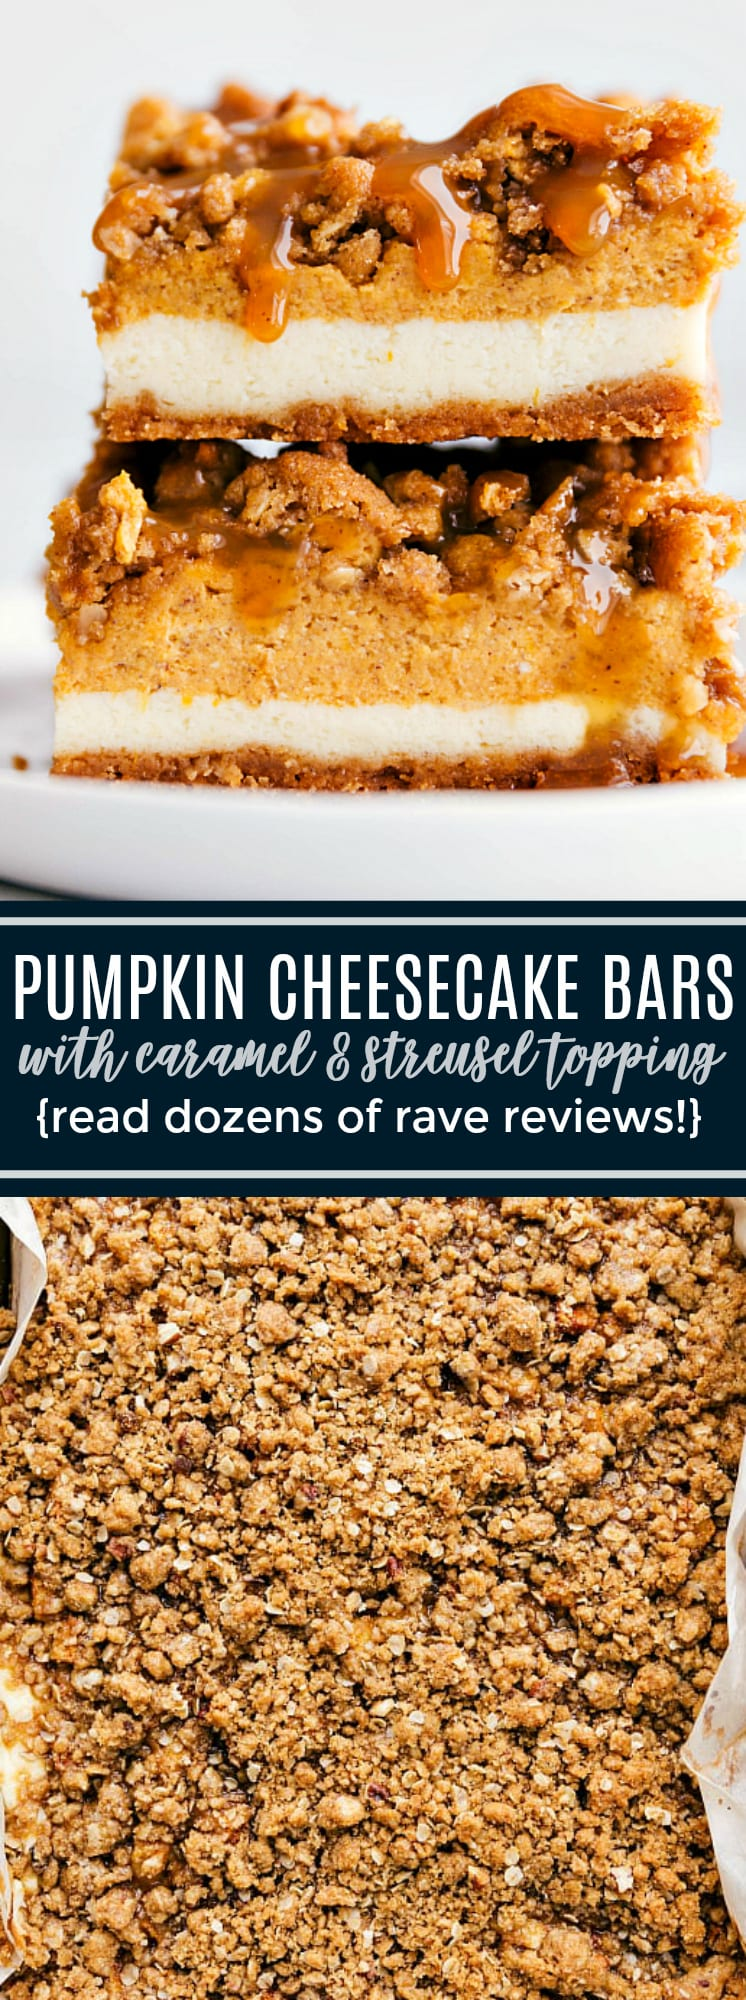 The BEST pumpkin cheesecake -- a delicious cinnamon graham cracker crust with two layers of cheesecake topped with an easy streusel and caramel sauce. These famous pumpkin cheesecake bars are sure to be a smash hit wherever you serve them -- just read the dozens of rave reviews! via chelseasmessyapron.com #pumpkin #cheesecake #bars #streusel #best #thanksgiving #dessert #easy #caramel #layered